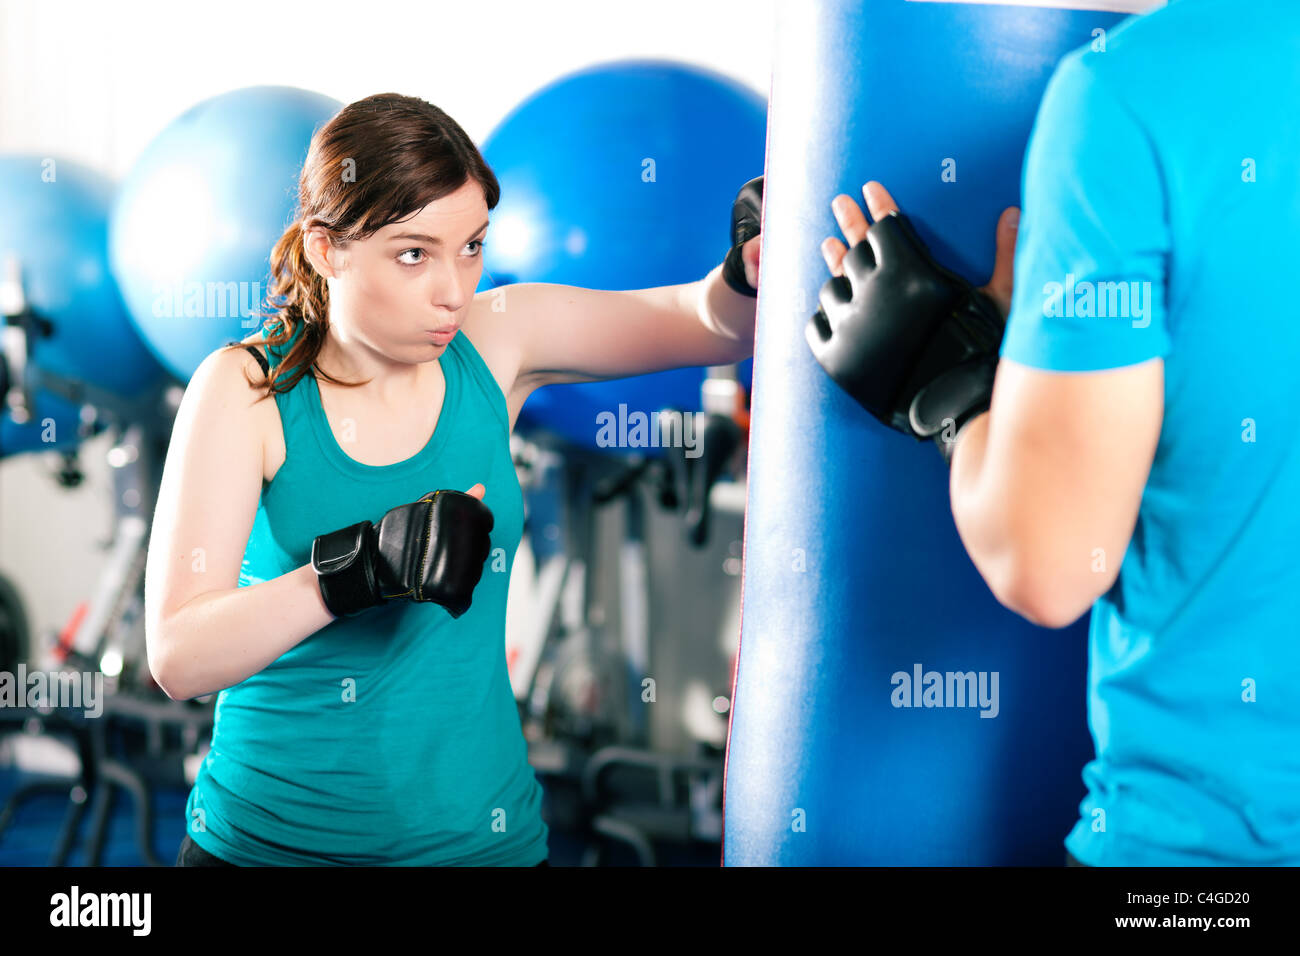 Woman Boxer hitting the sandbag, her trainer is assisting - Stock Image